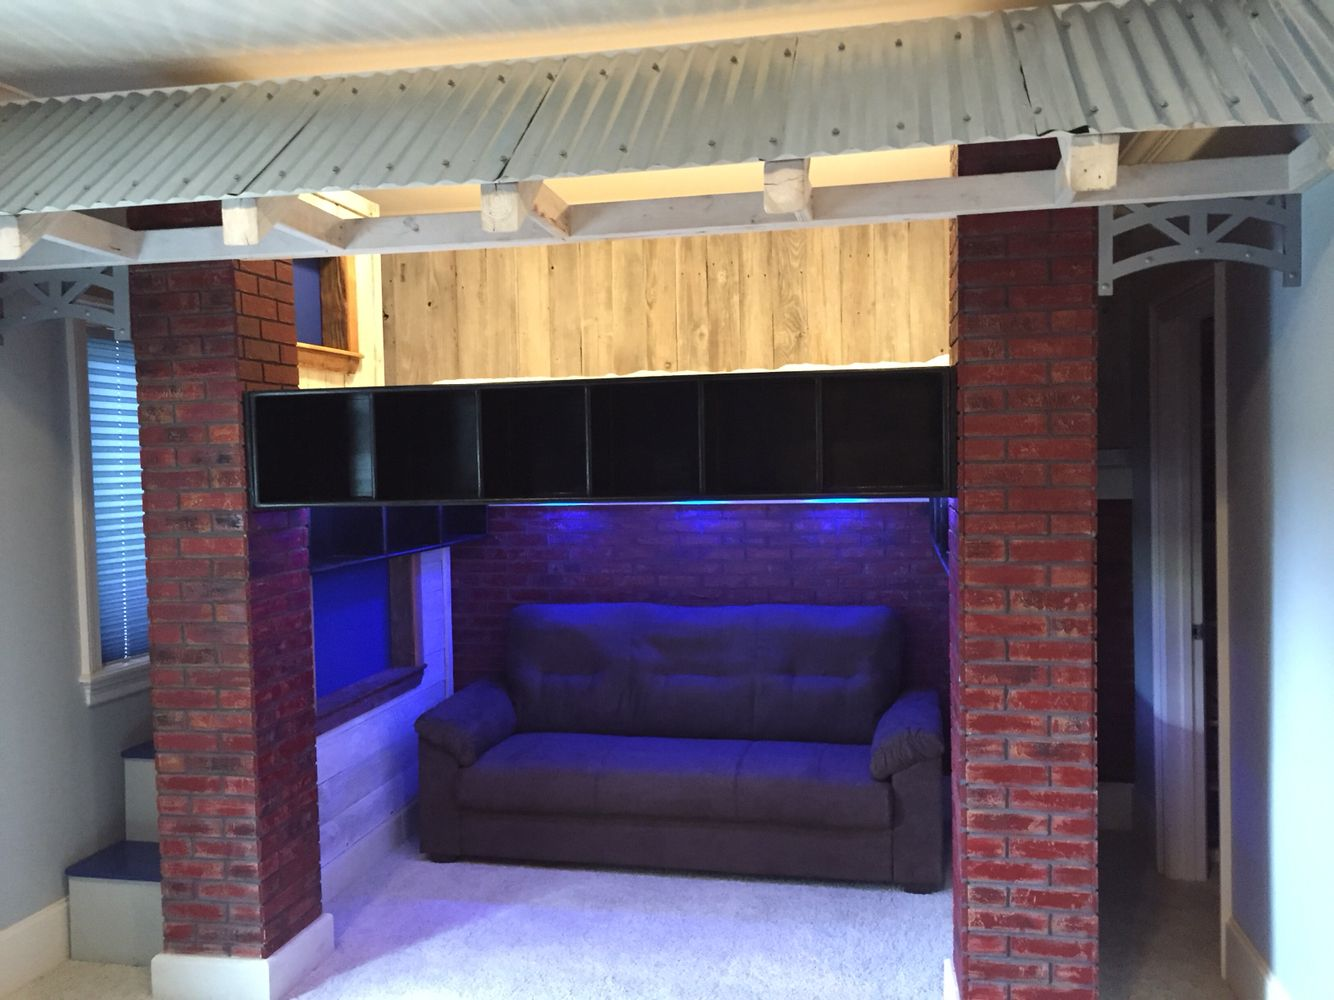 Baseball Dugout Loft Bed Faux Brick Walls And Columns With Lounge Sofa Beneath